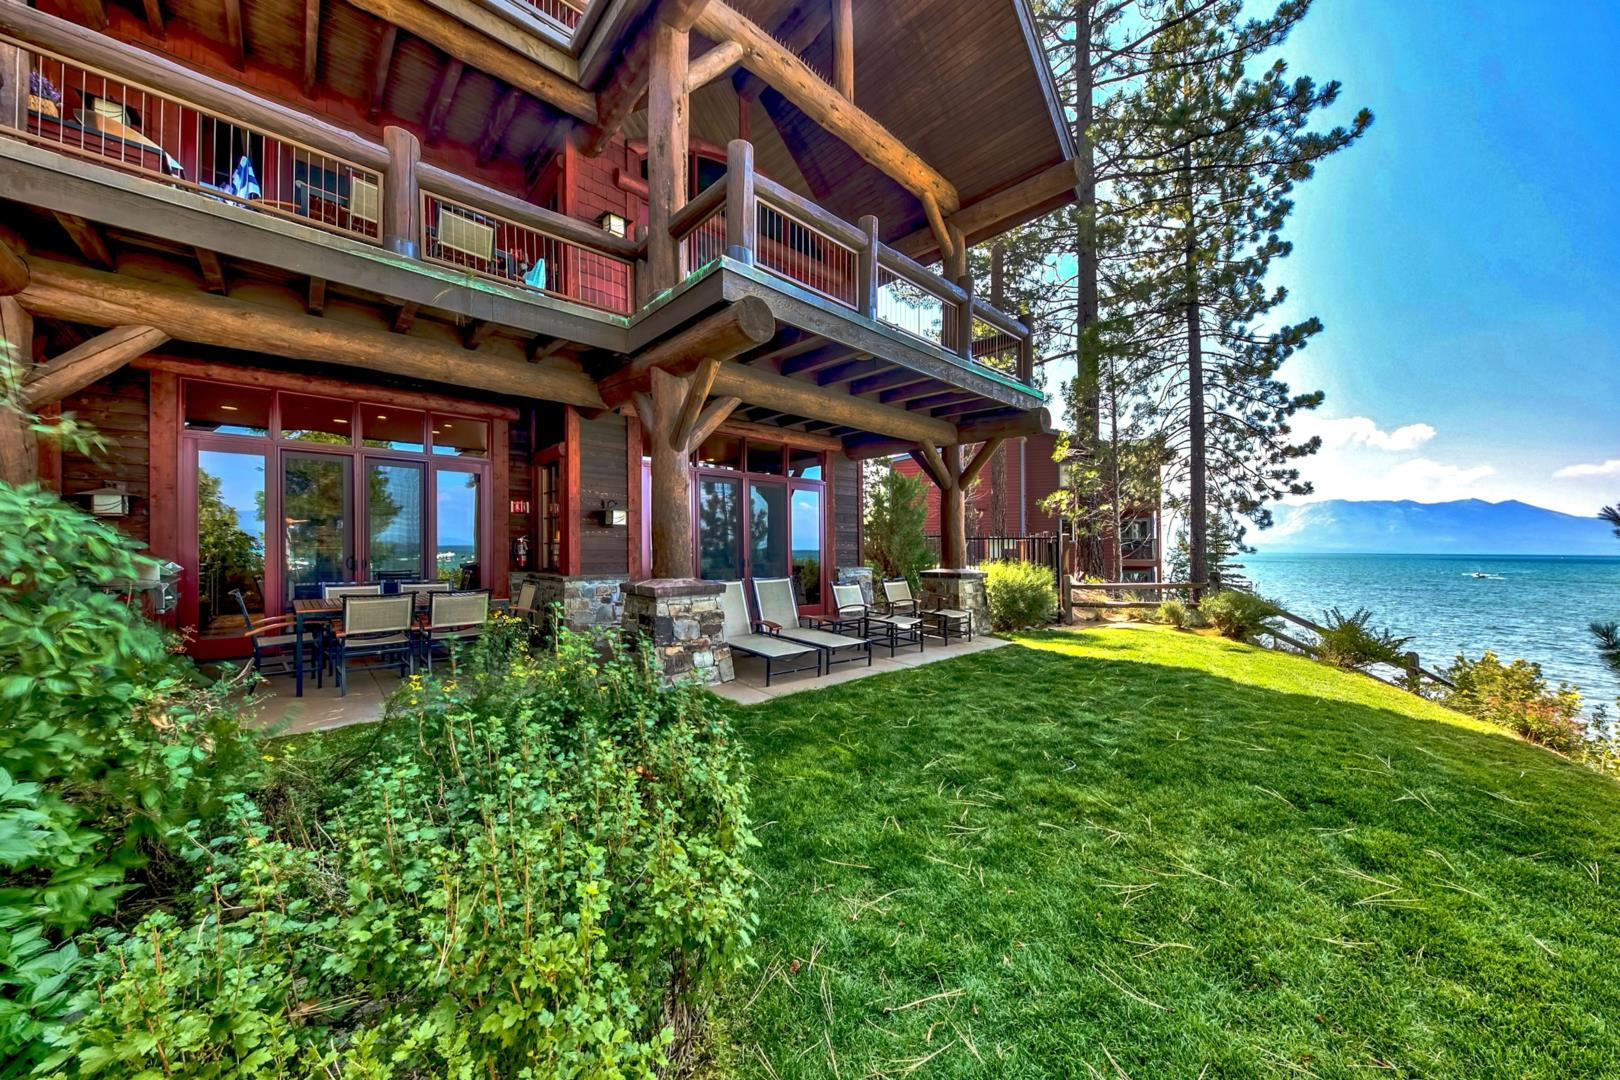 3371 Lake Tahoe Blvd #1D - Why you should love it